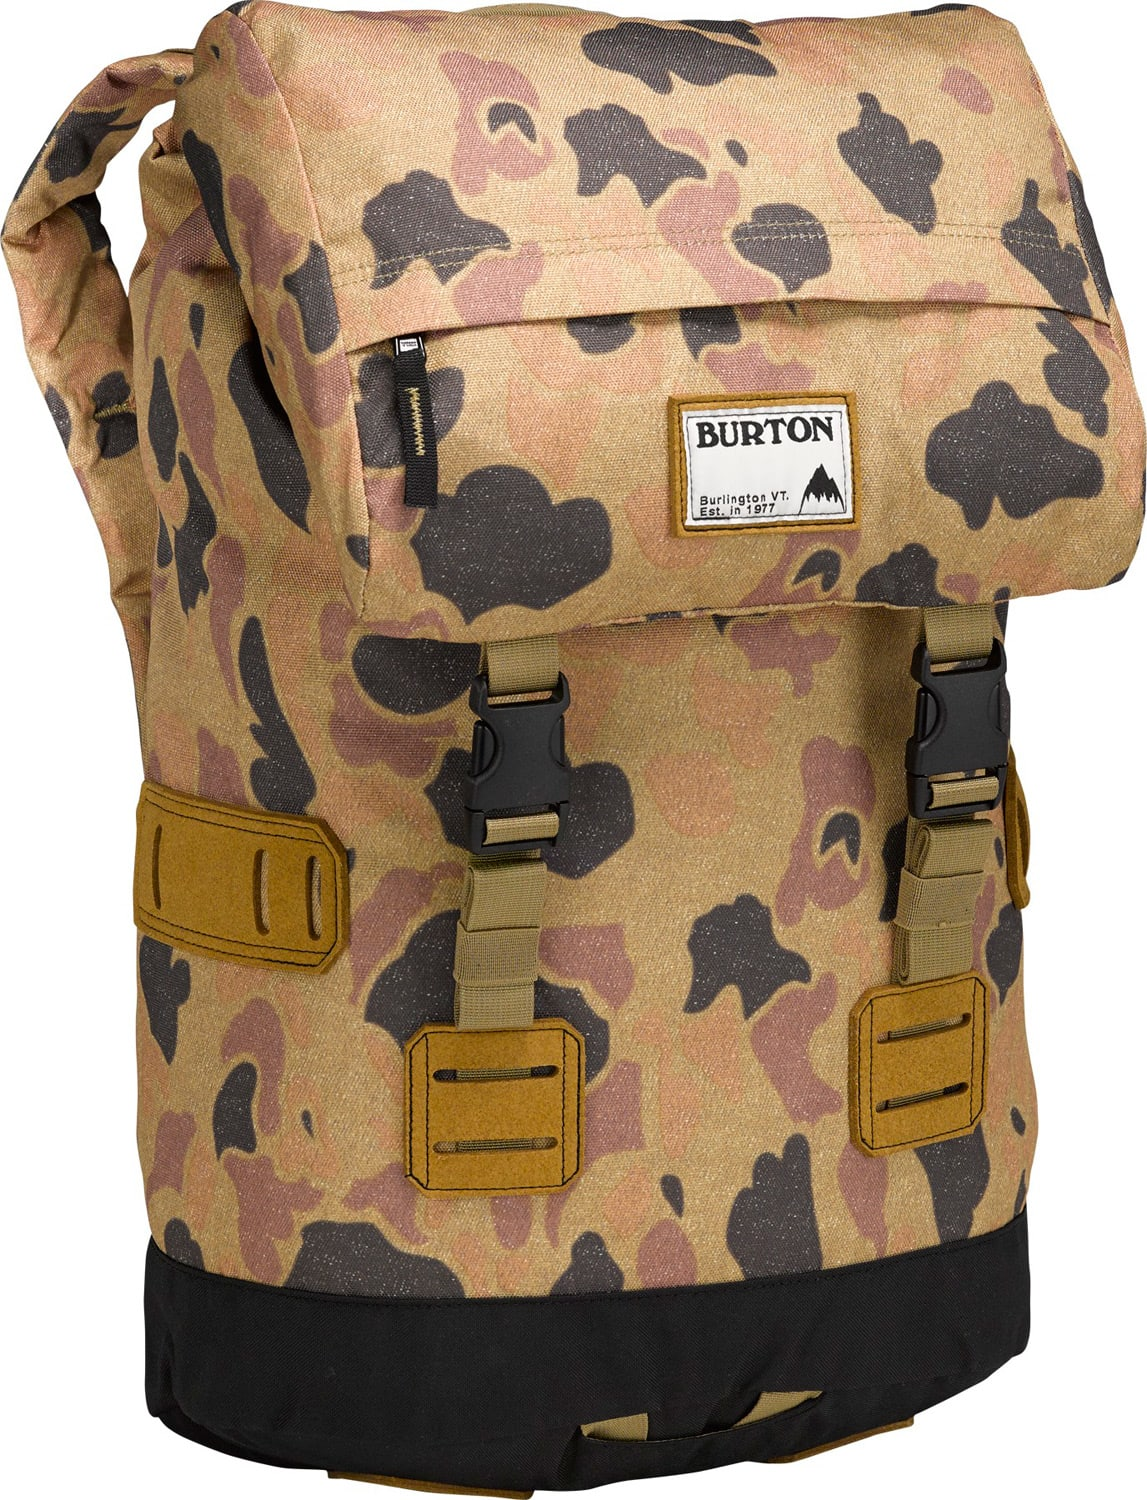 Burton Tinder Backpack Duck Hunter Camo 25L